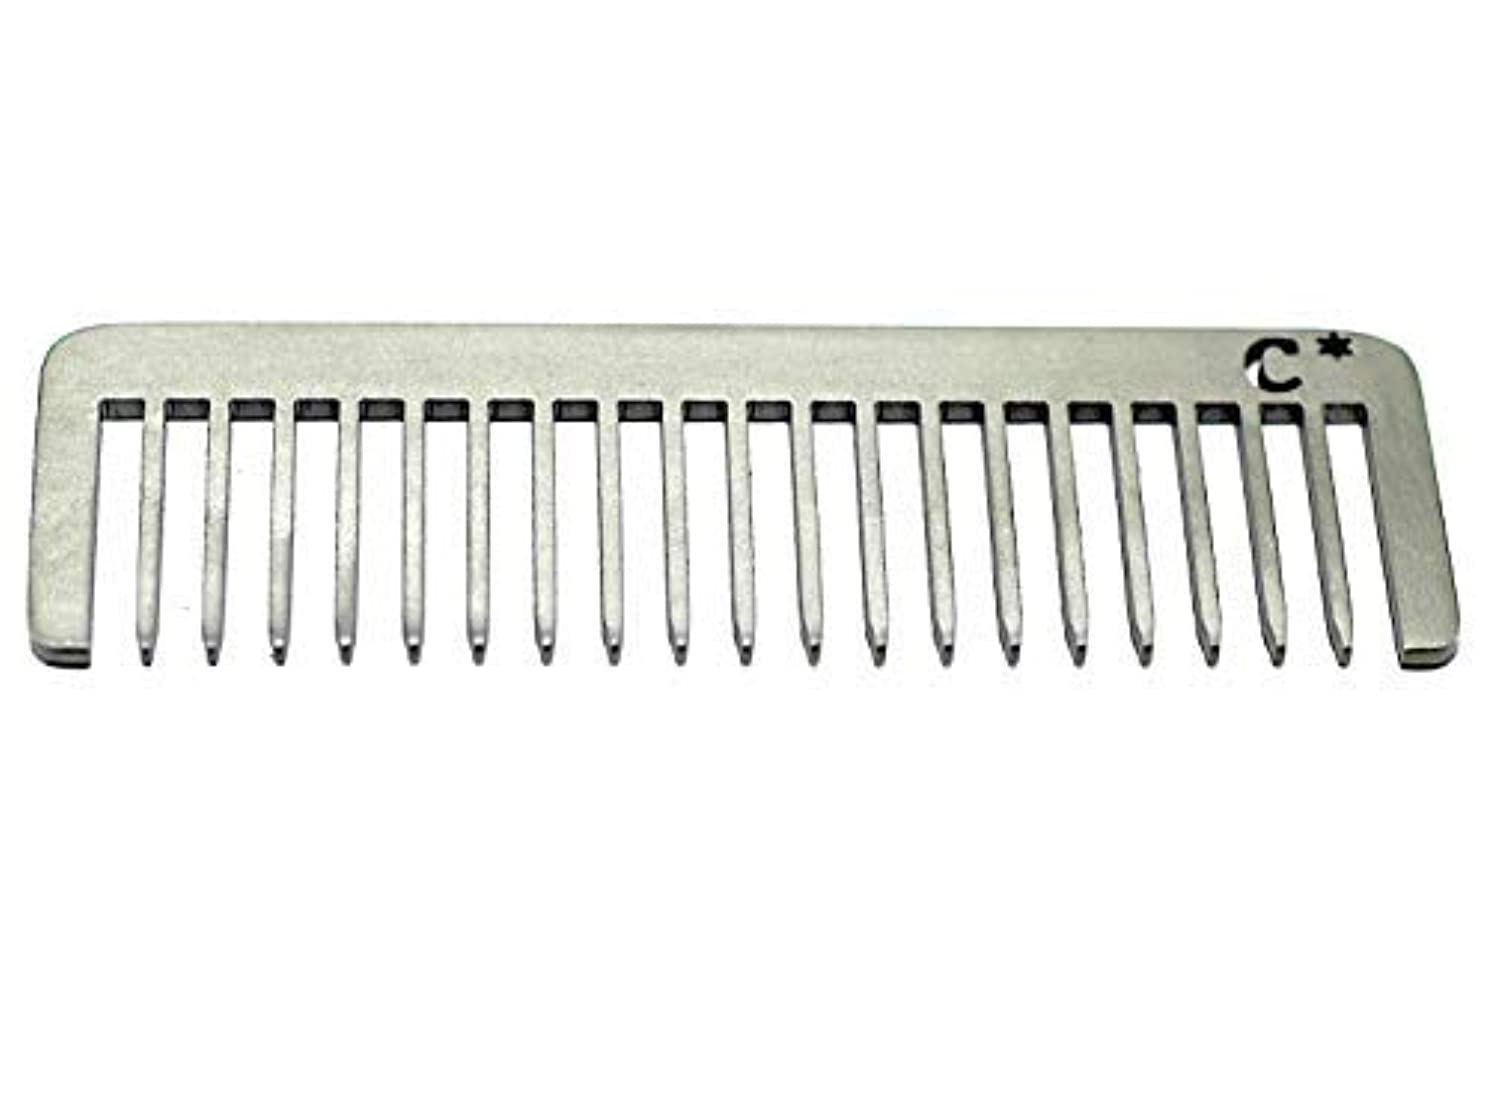 麦芽研究所言語学Chicago Comb Short Model 5 Standard, Made in USA, Stainless Steel, Wide Tooth, Rake Comb, Anti-Static, Ultra-Smooth...